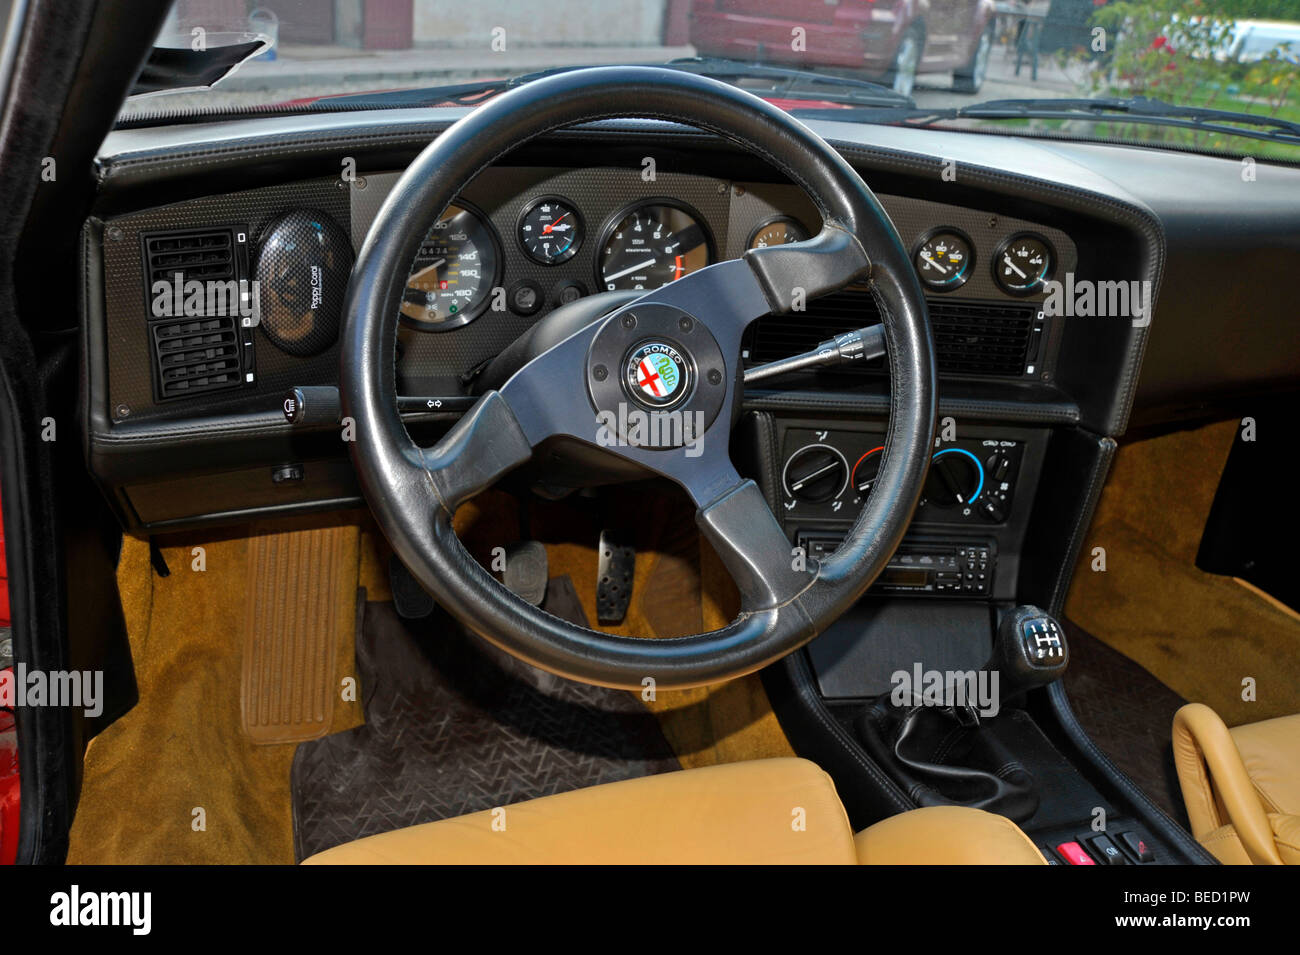 alfa romeo zagato sz classic italian sports car interior stock photo 26102353 alamy. Black Bedroom Furniture Sets. Home Design Ideas